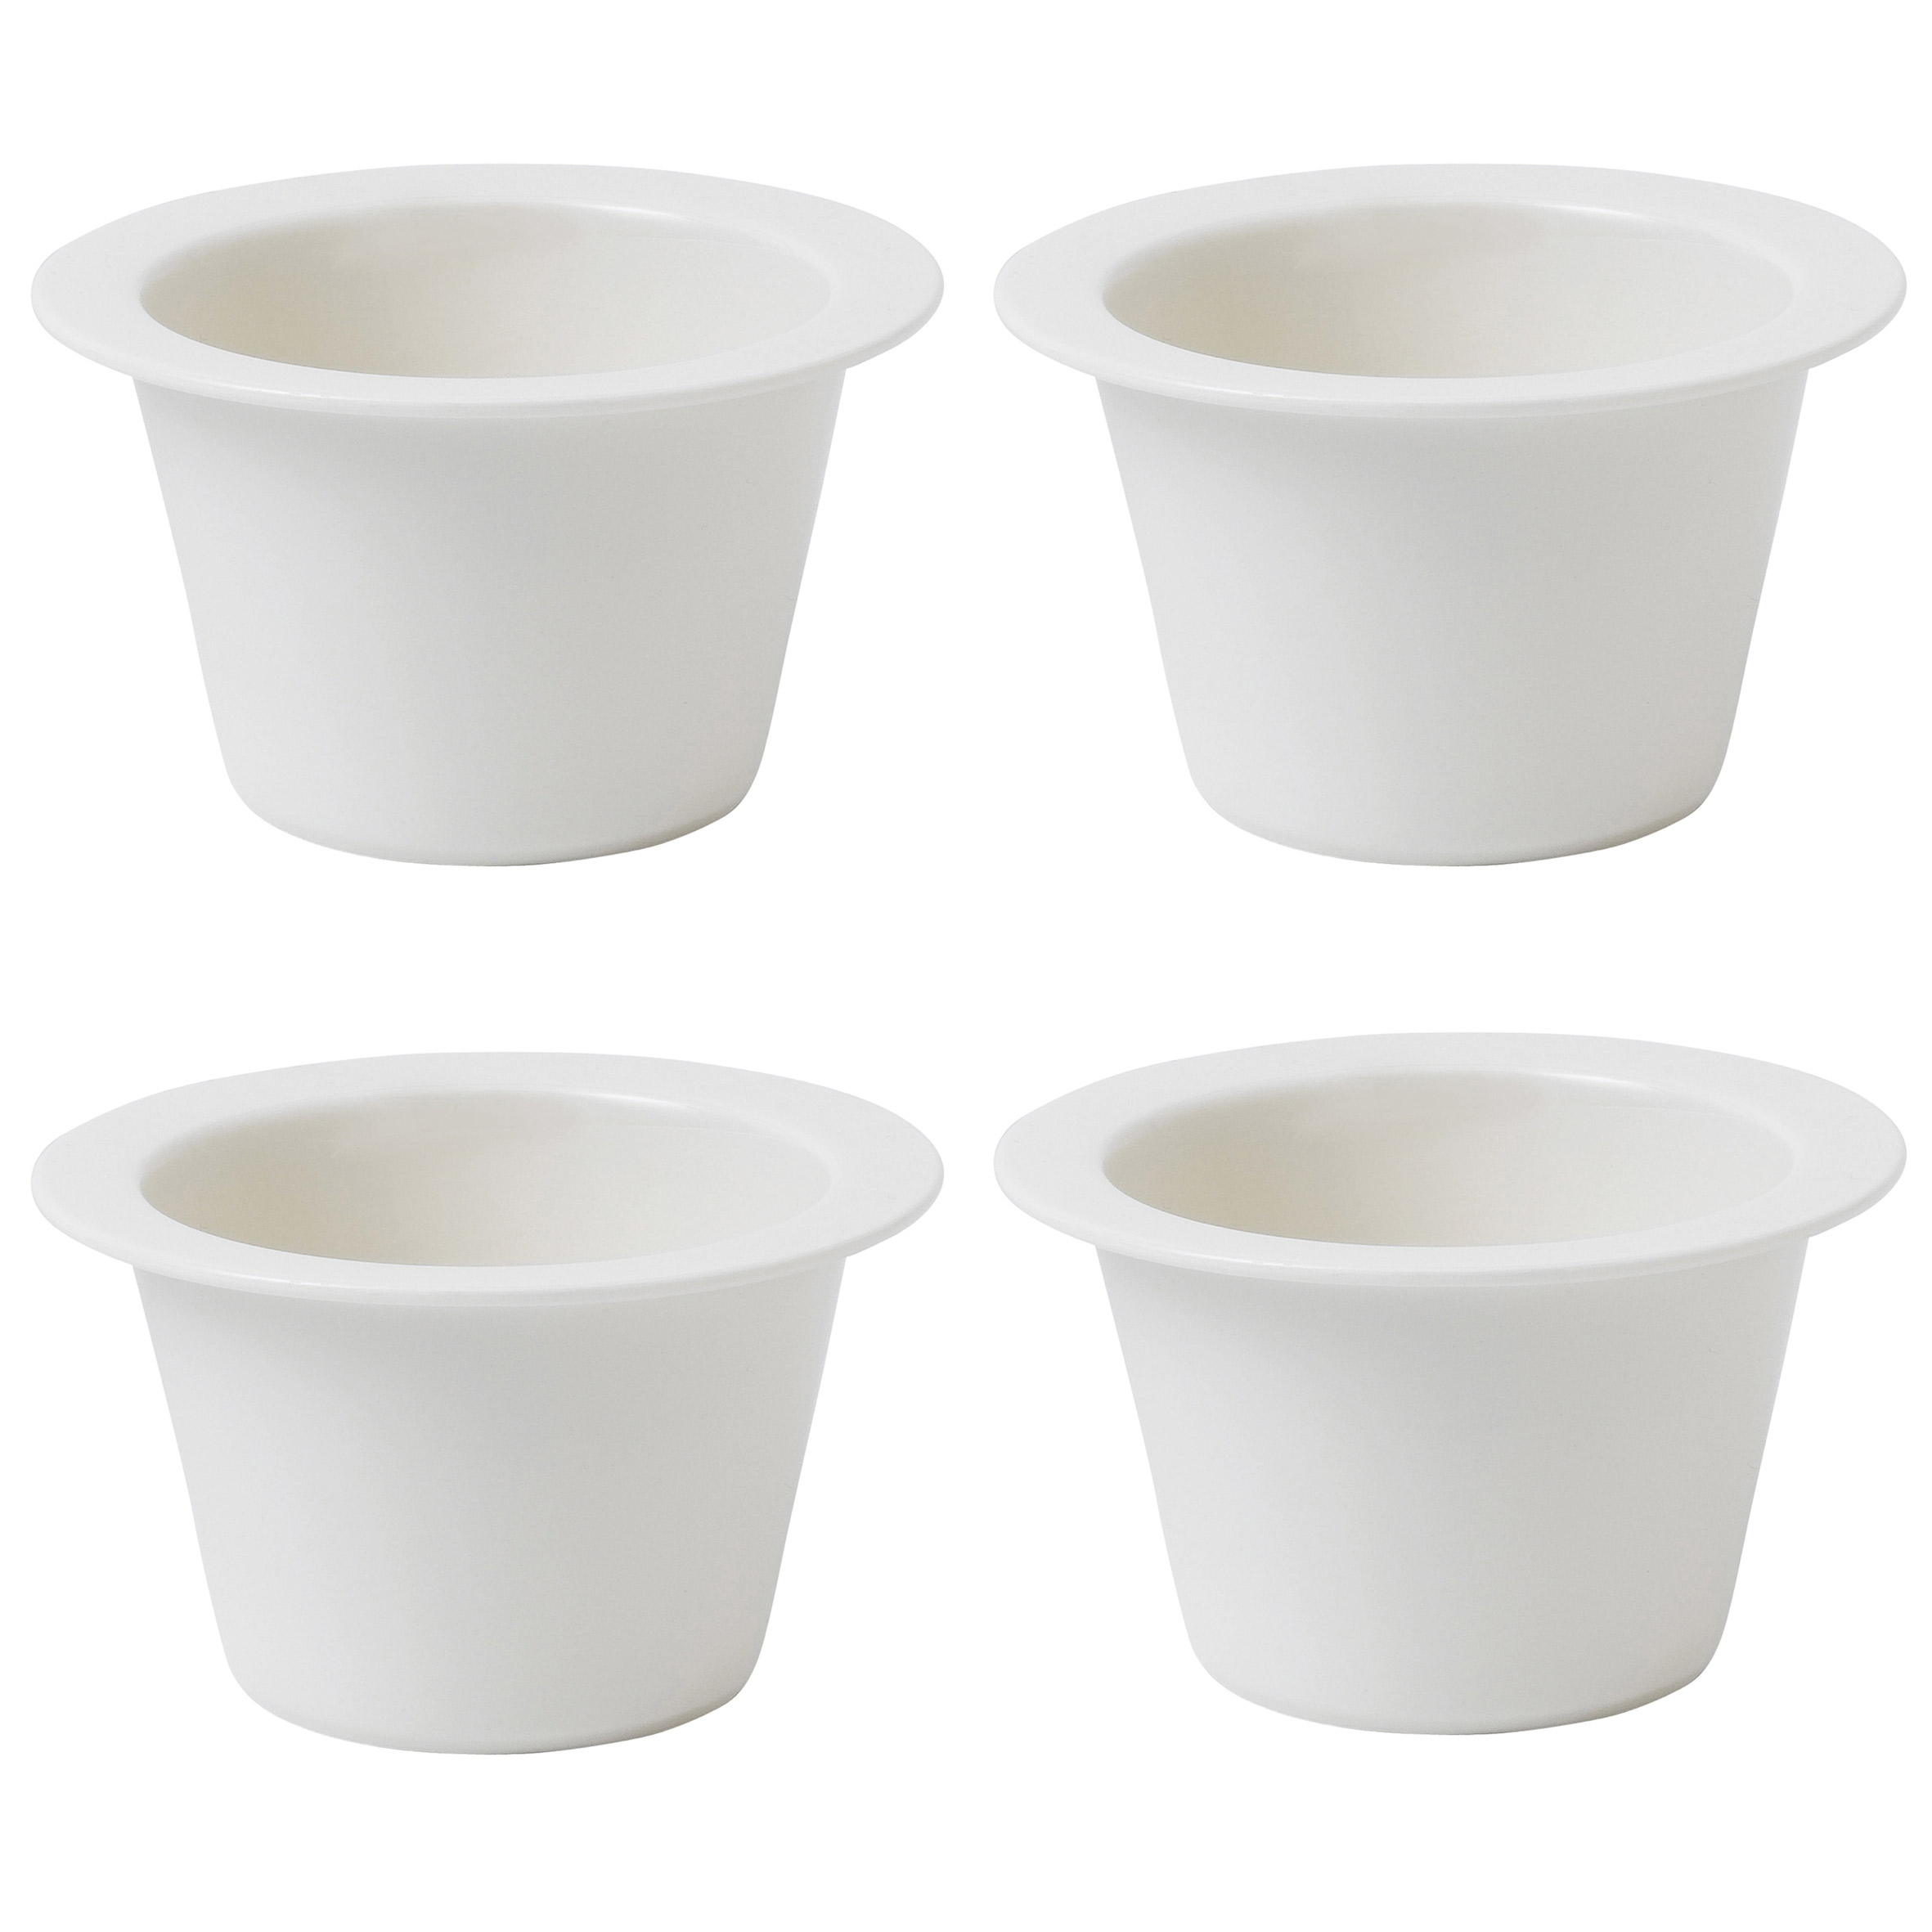 ramekins set of 4 – large